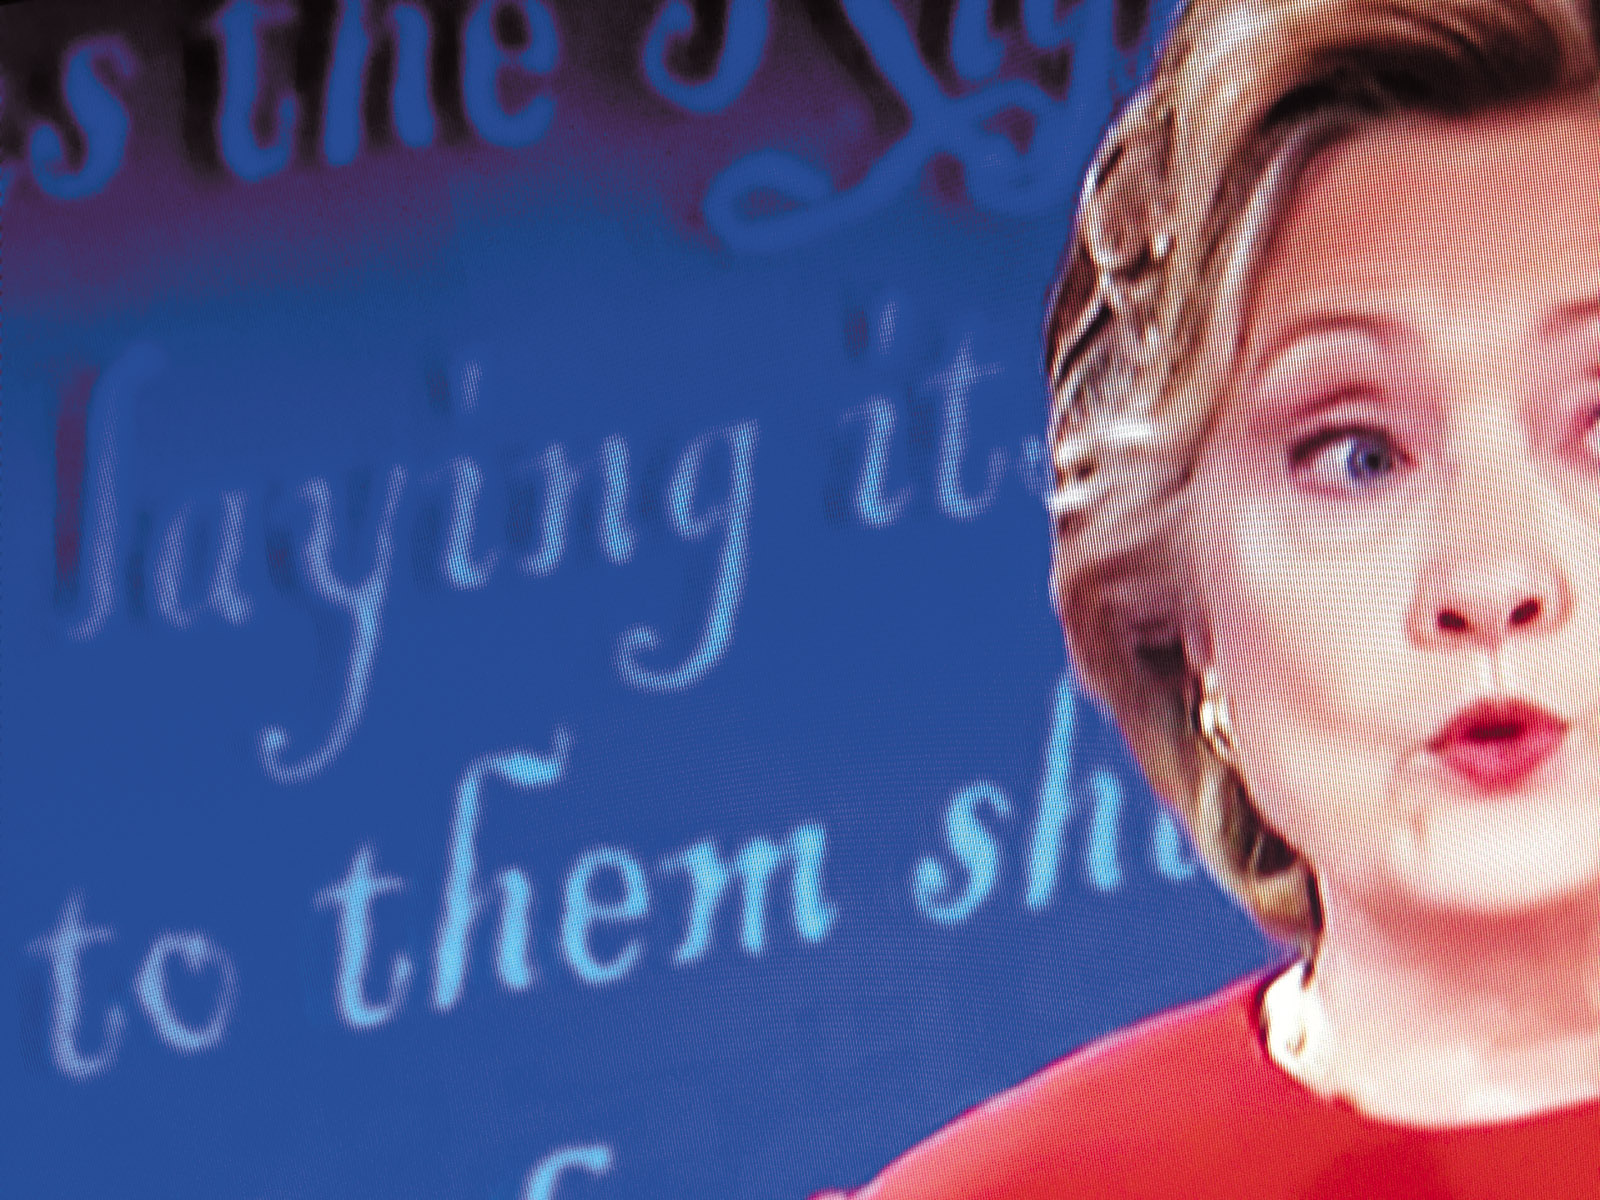 Hillary Clinton on television during her first presidential debate with Donald Trump, Hofstra University, Hempstead, New York, September 2016